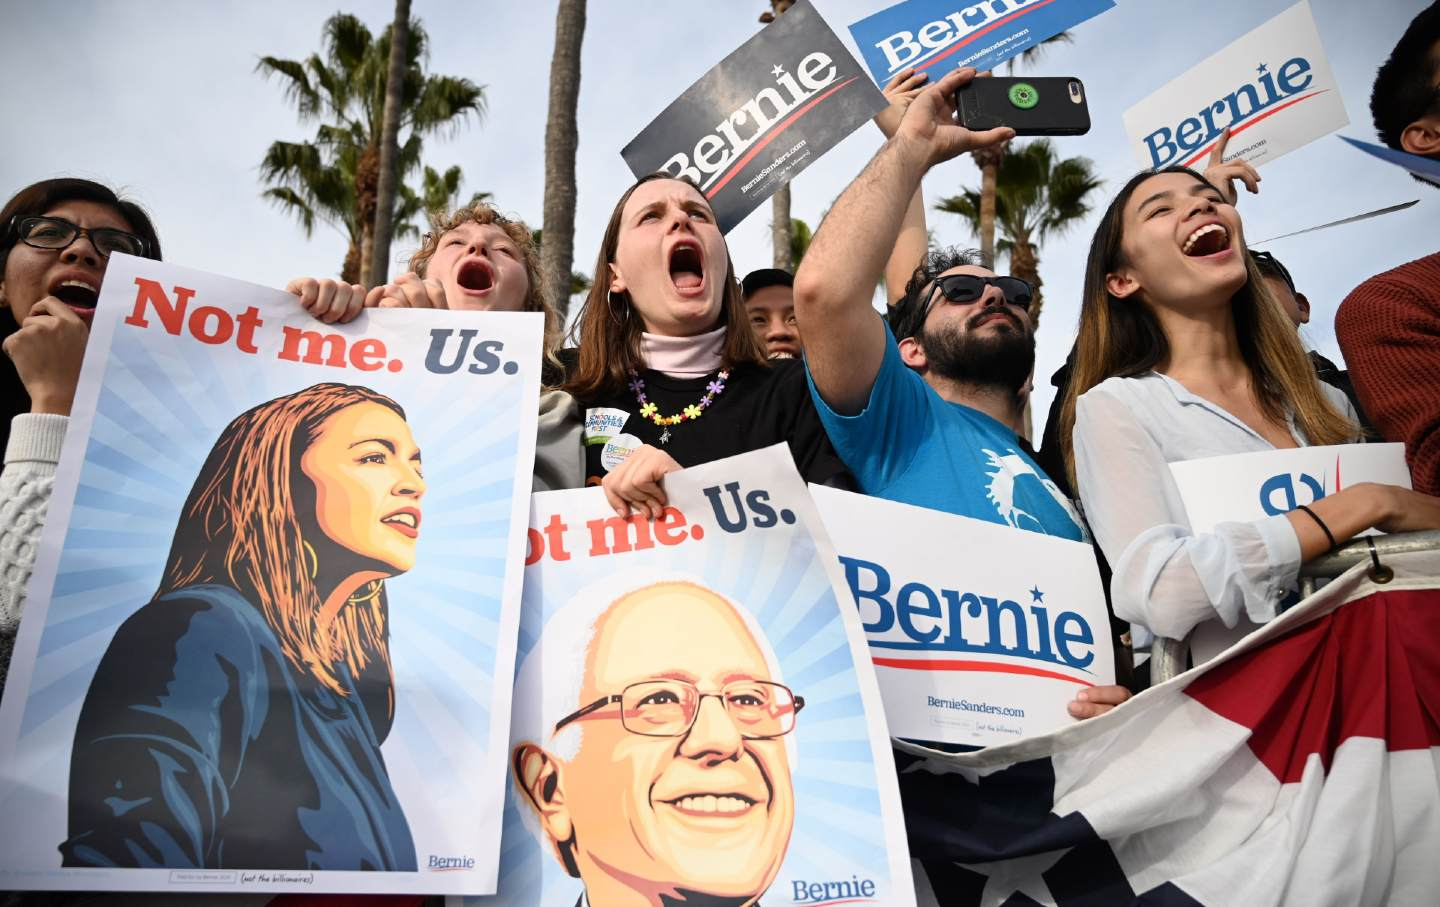 Bernie supporters at a rally, holding posters.